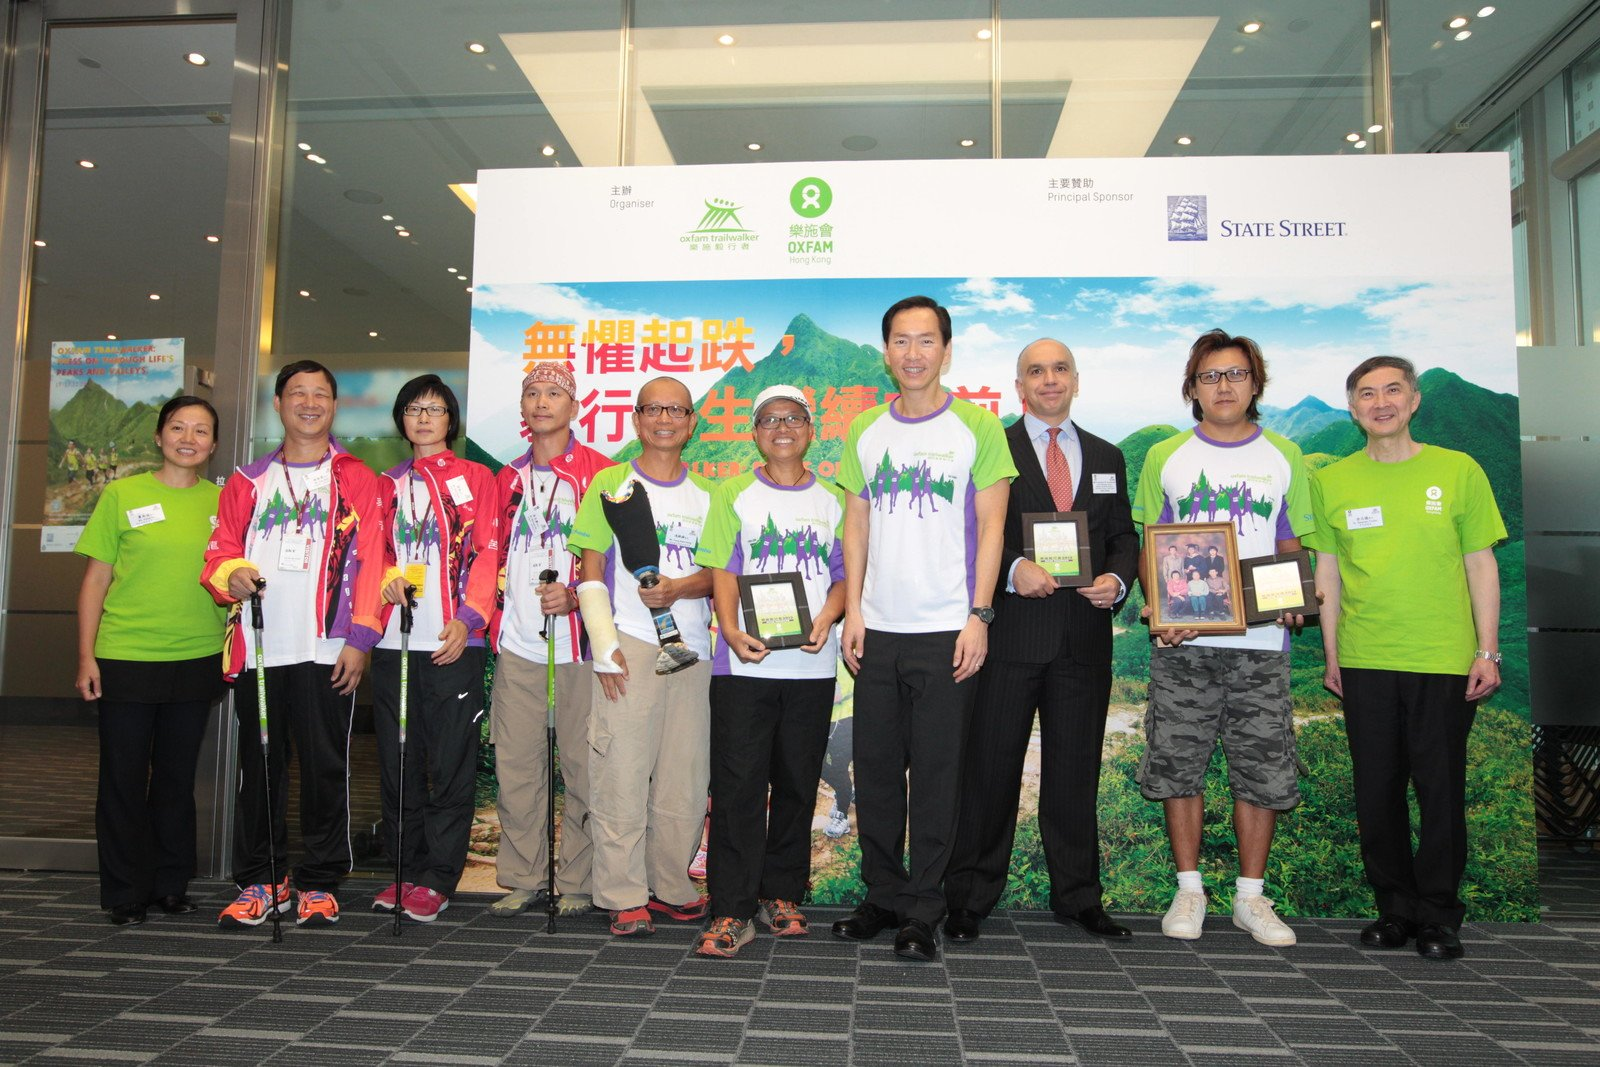 (From left to right) Kanie Siu (Director of Fundraising & Communications, Oxfam Hong Kong); Kim Mok (visually-impaired trailwalker); Alsa Kwok (visually-impaired trailwalker); Michael Ng (hearing-impaired trailwalker), amputee trailwalker Fung Kam Hung; Mrs Fung; Bernard Chan, Francesco M. Squillacioti from State Street; Tse Chi Kin; Stephen Fisher (Director General, Oxfam Hong Kong) gathered for a group photo.